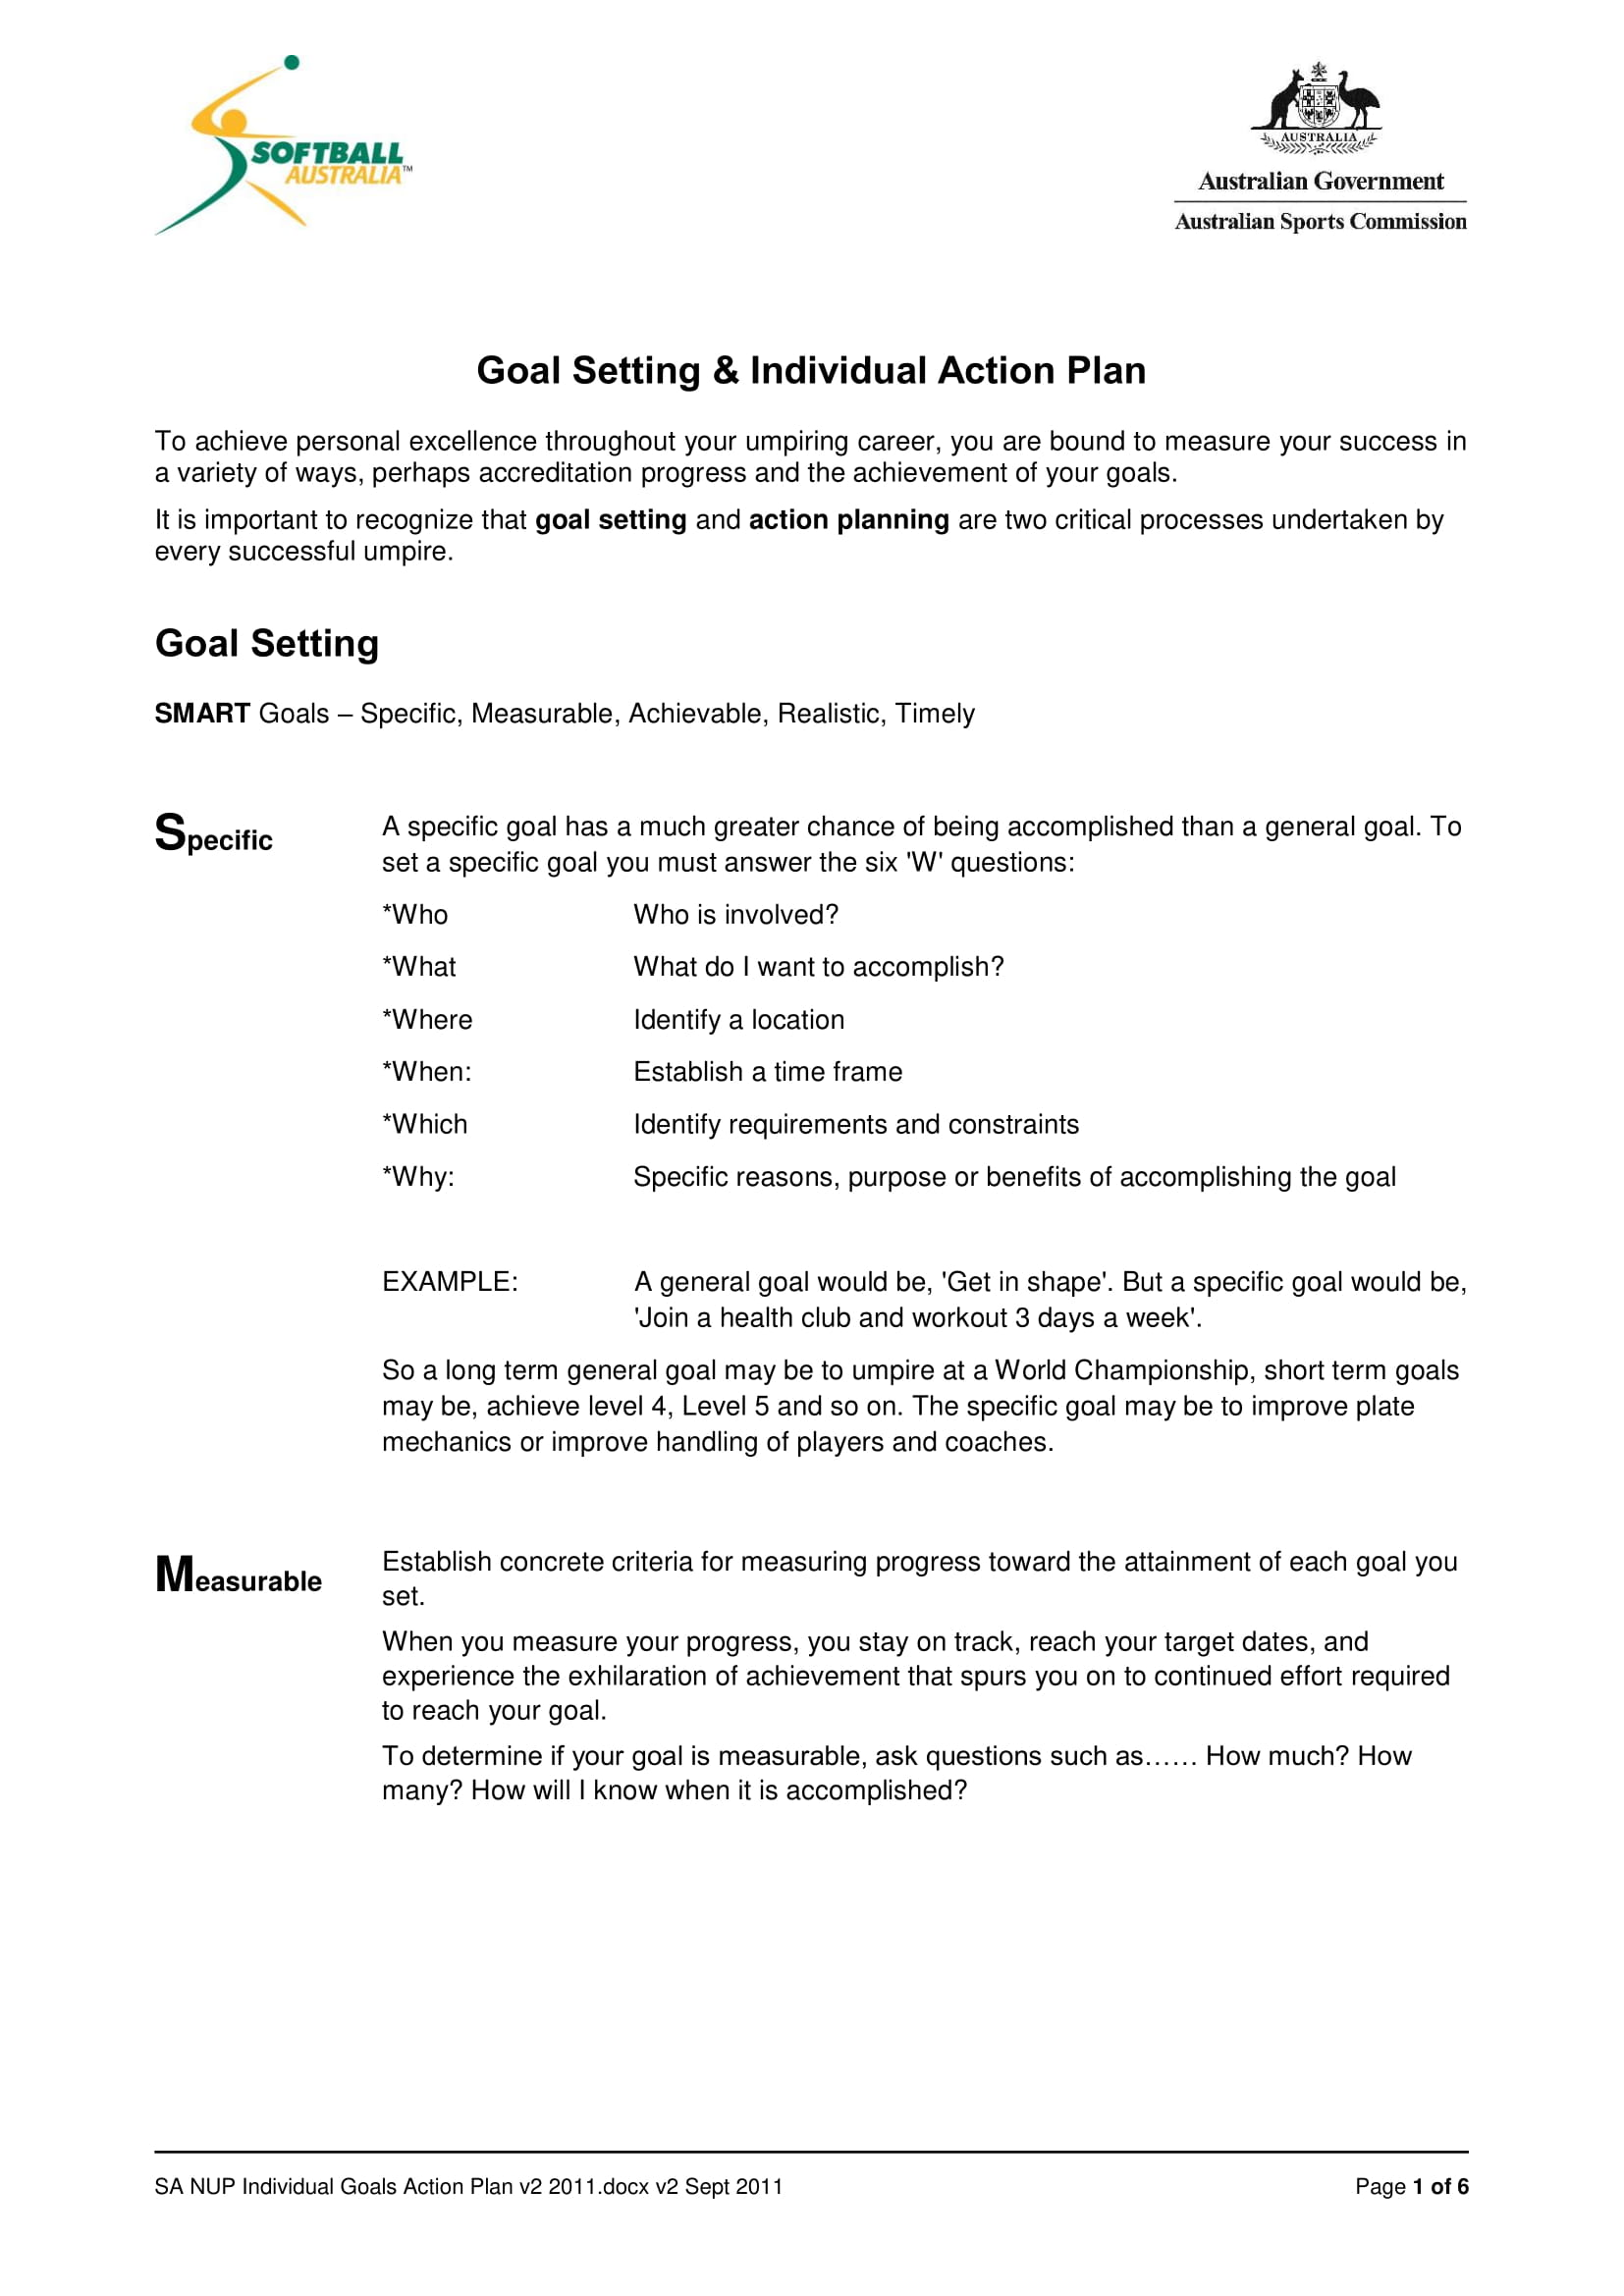 smart goal setting and individual action plan example 1